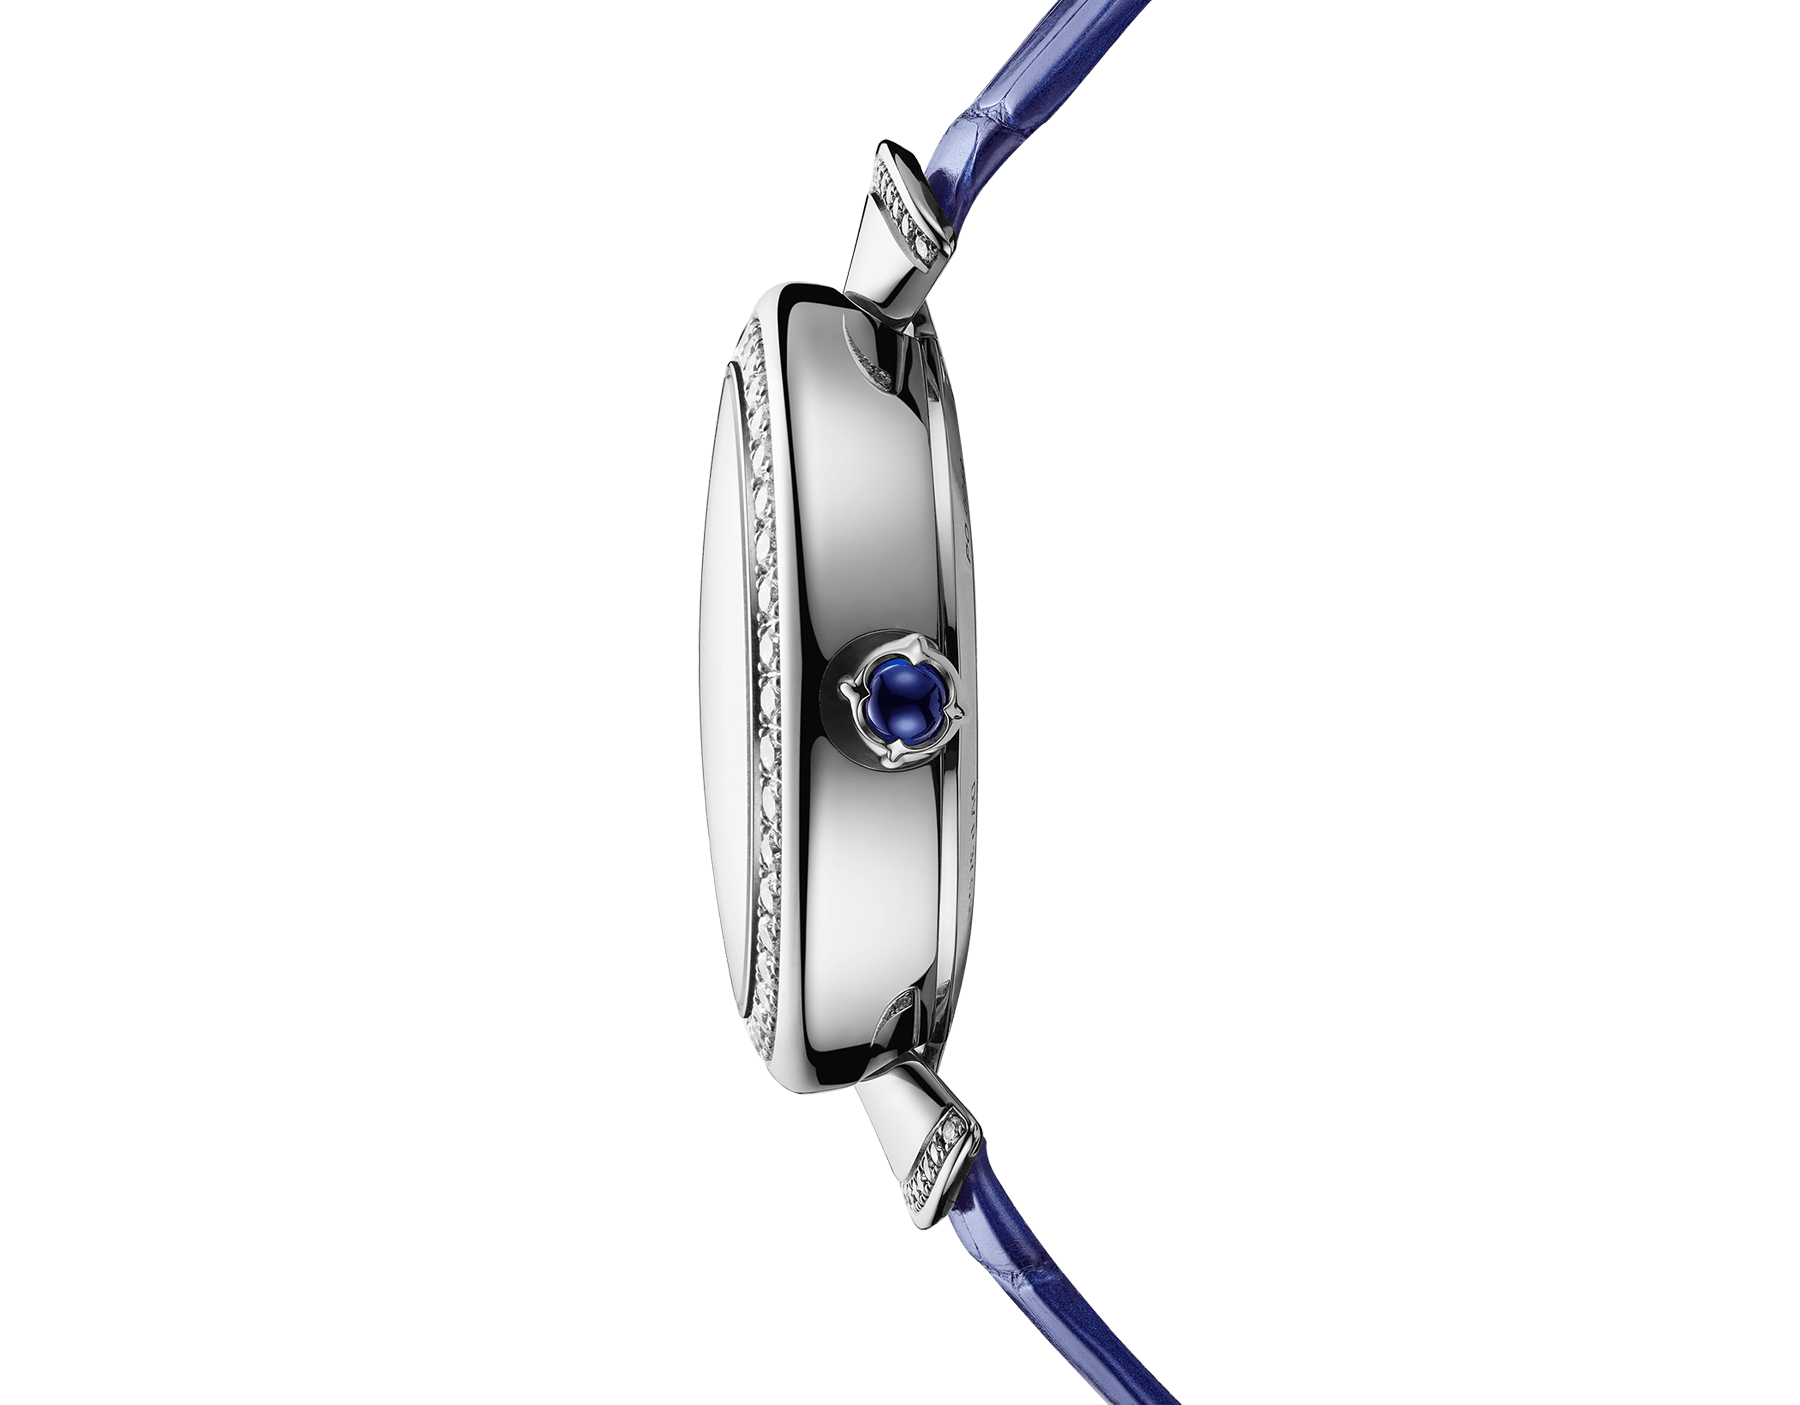 DIVAS' DREAM watch with 18 kt white gold case set with brilliant-cut diamonds, aventurine dial with hand-painted peacock set with diamonds and dark blue alligator bracelet 102740 image 3